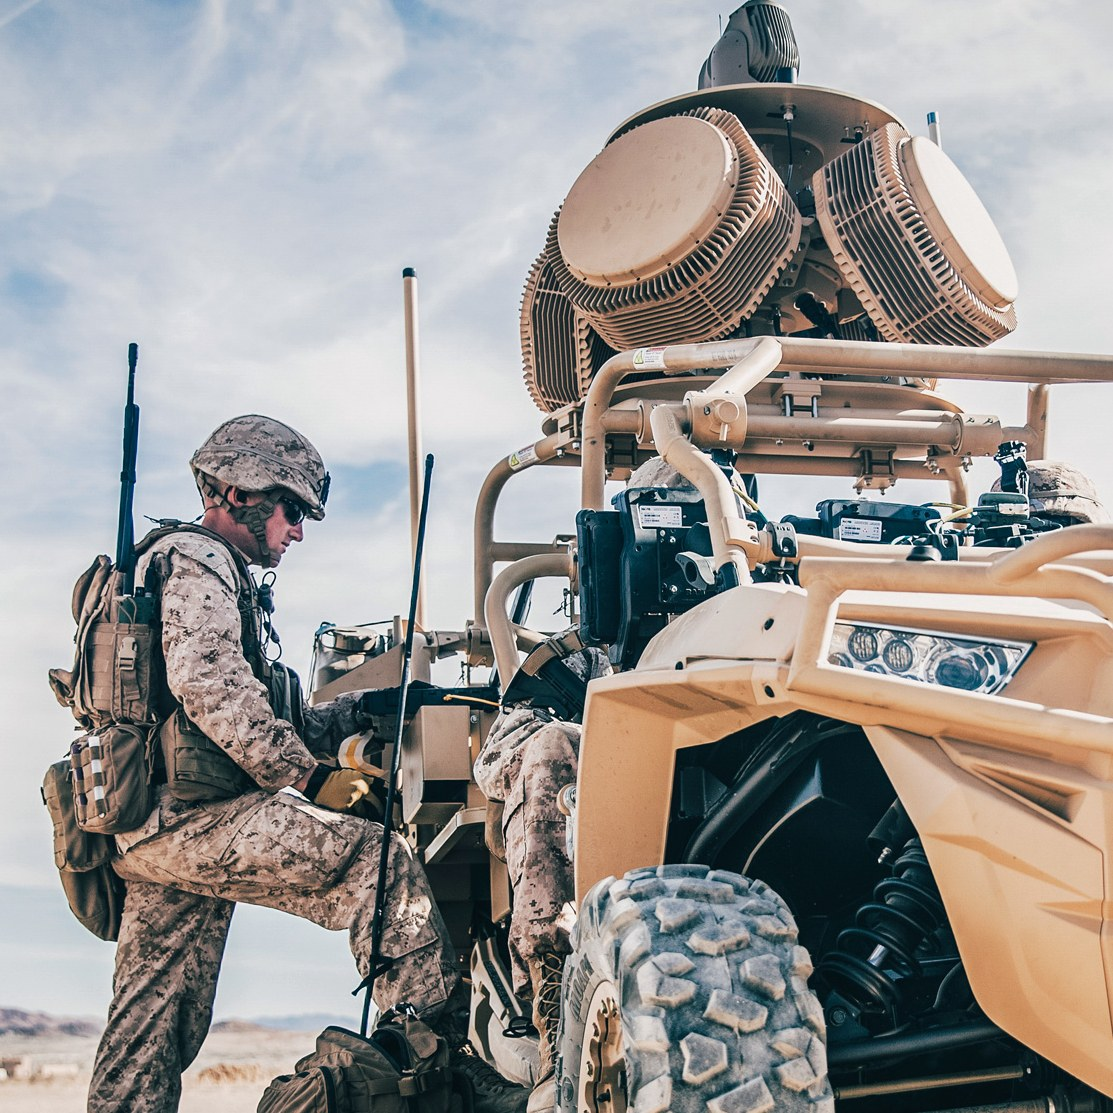 Security-Light-Marine-Air-Defense-Integrated-System-4912157